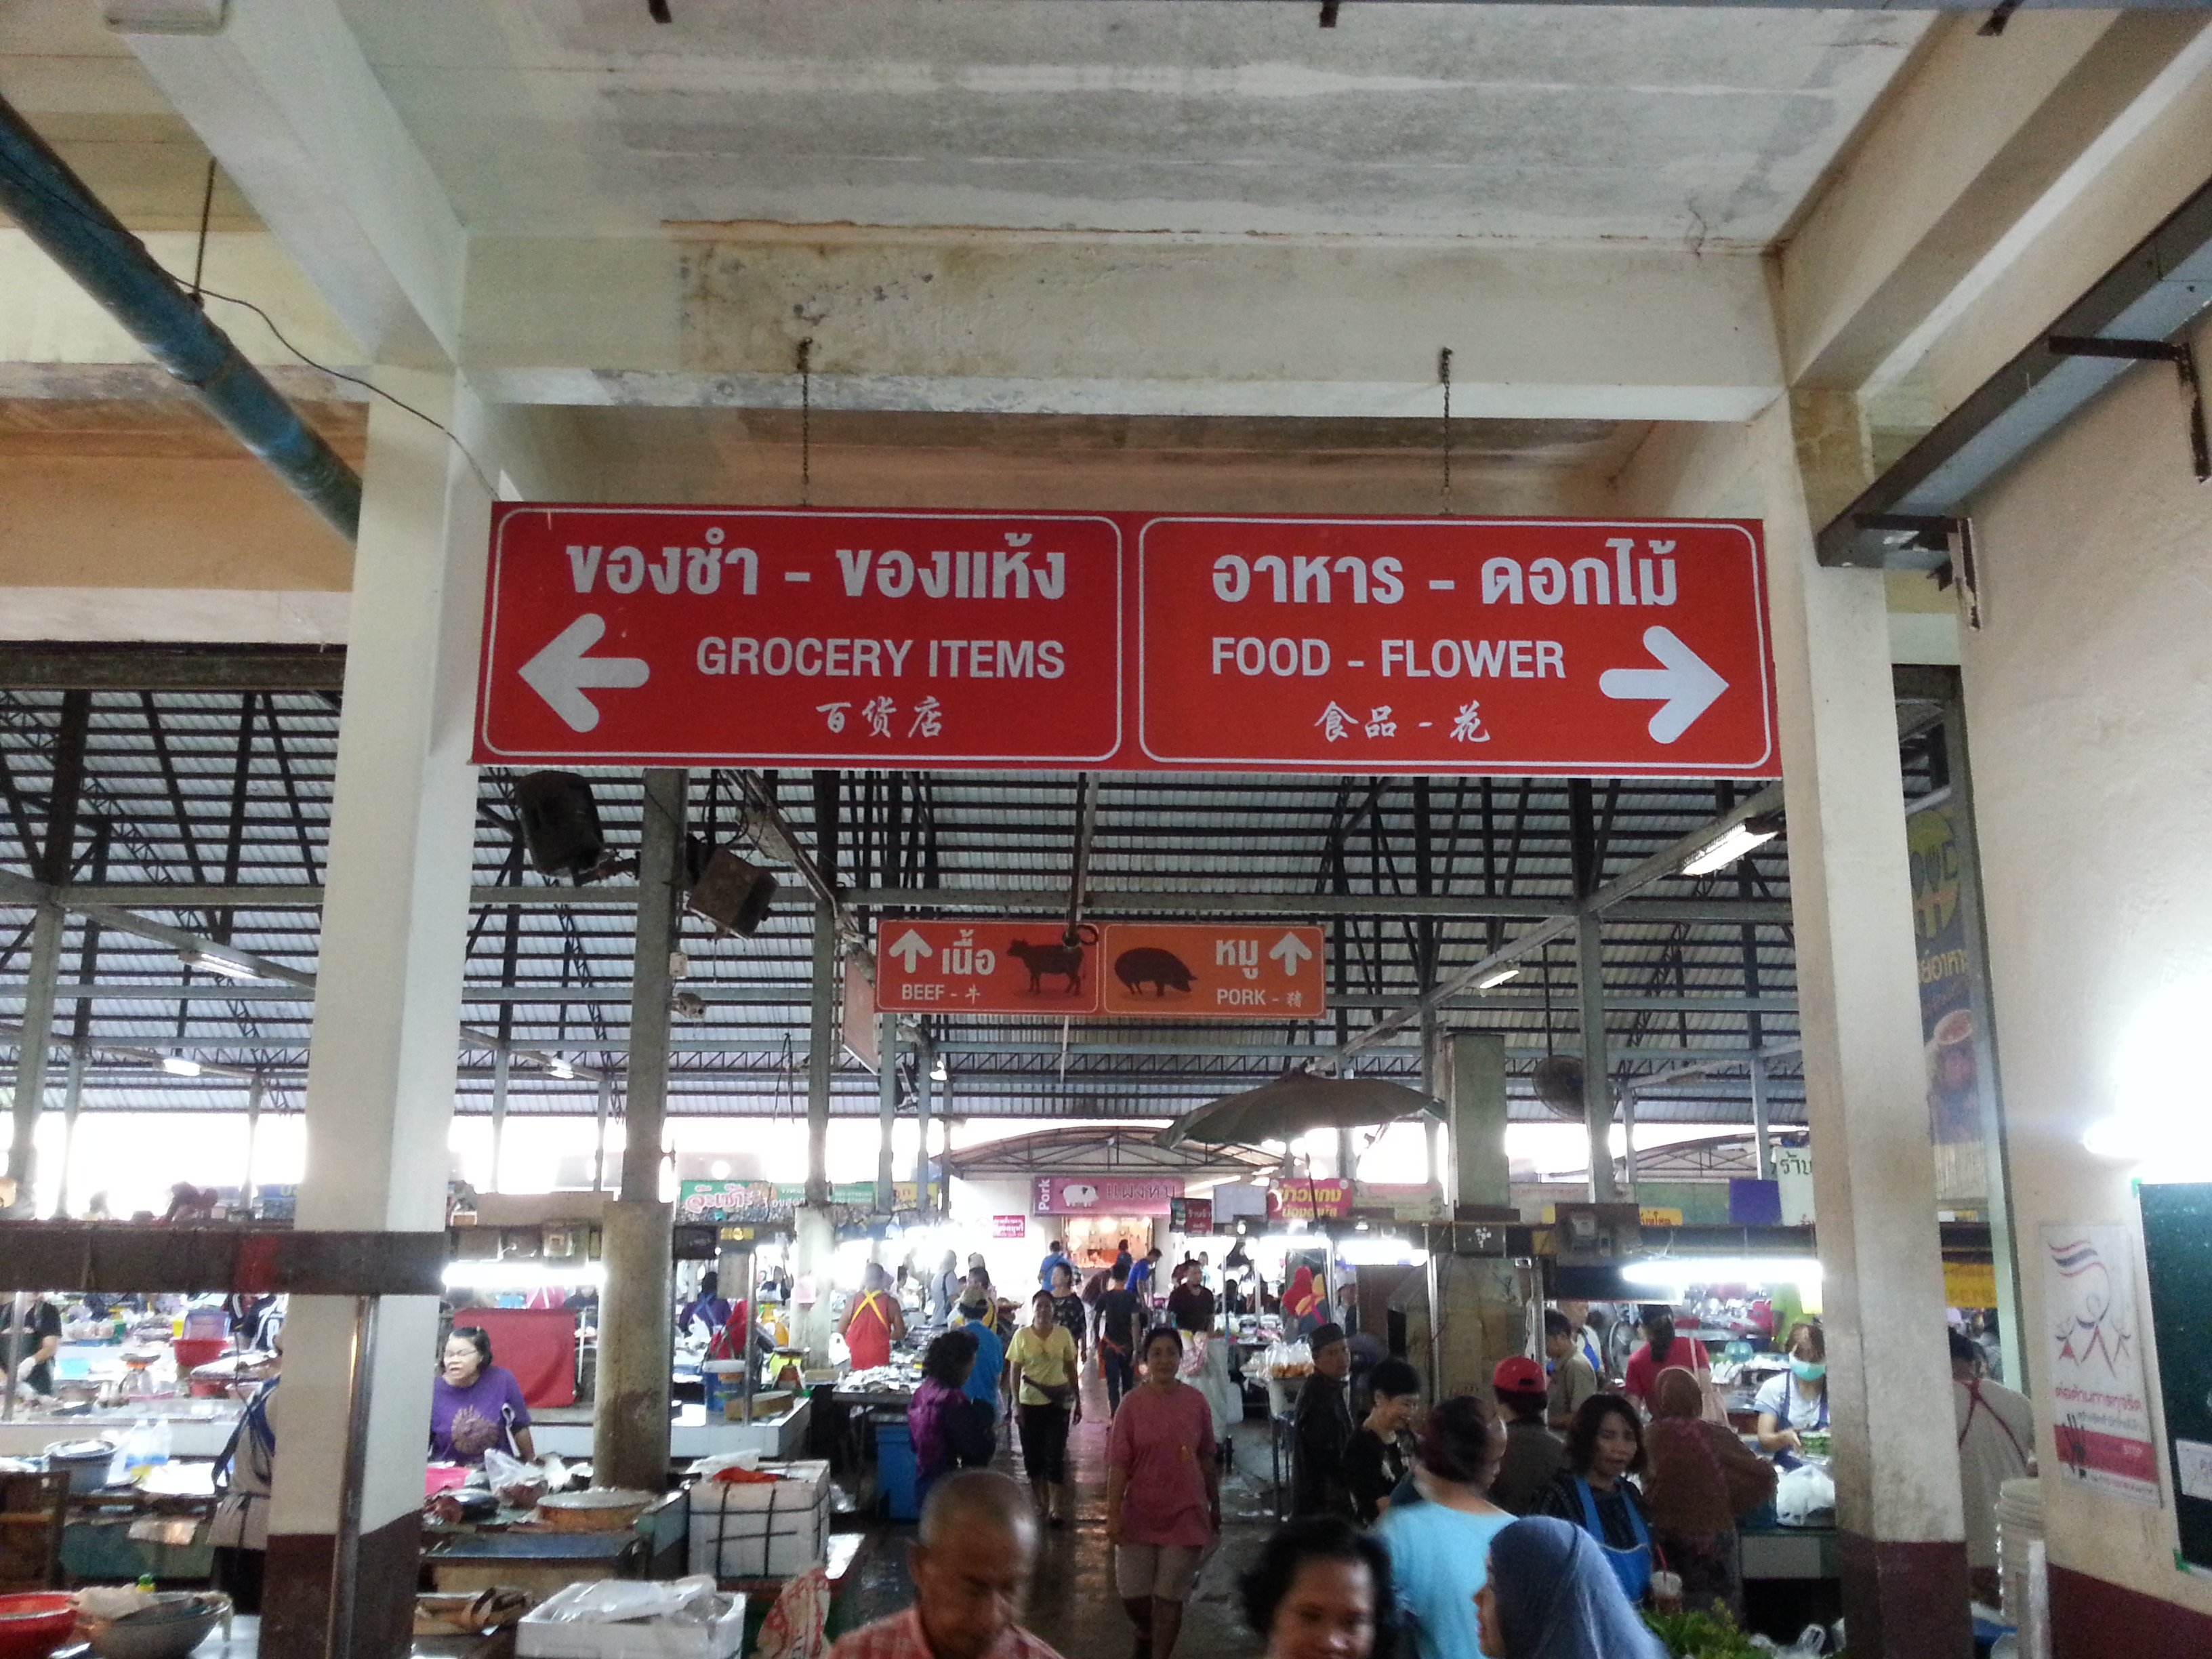 Maharaj Food Market is split into sections